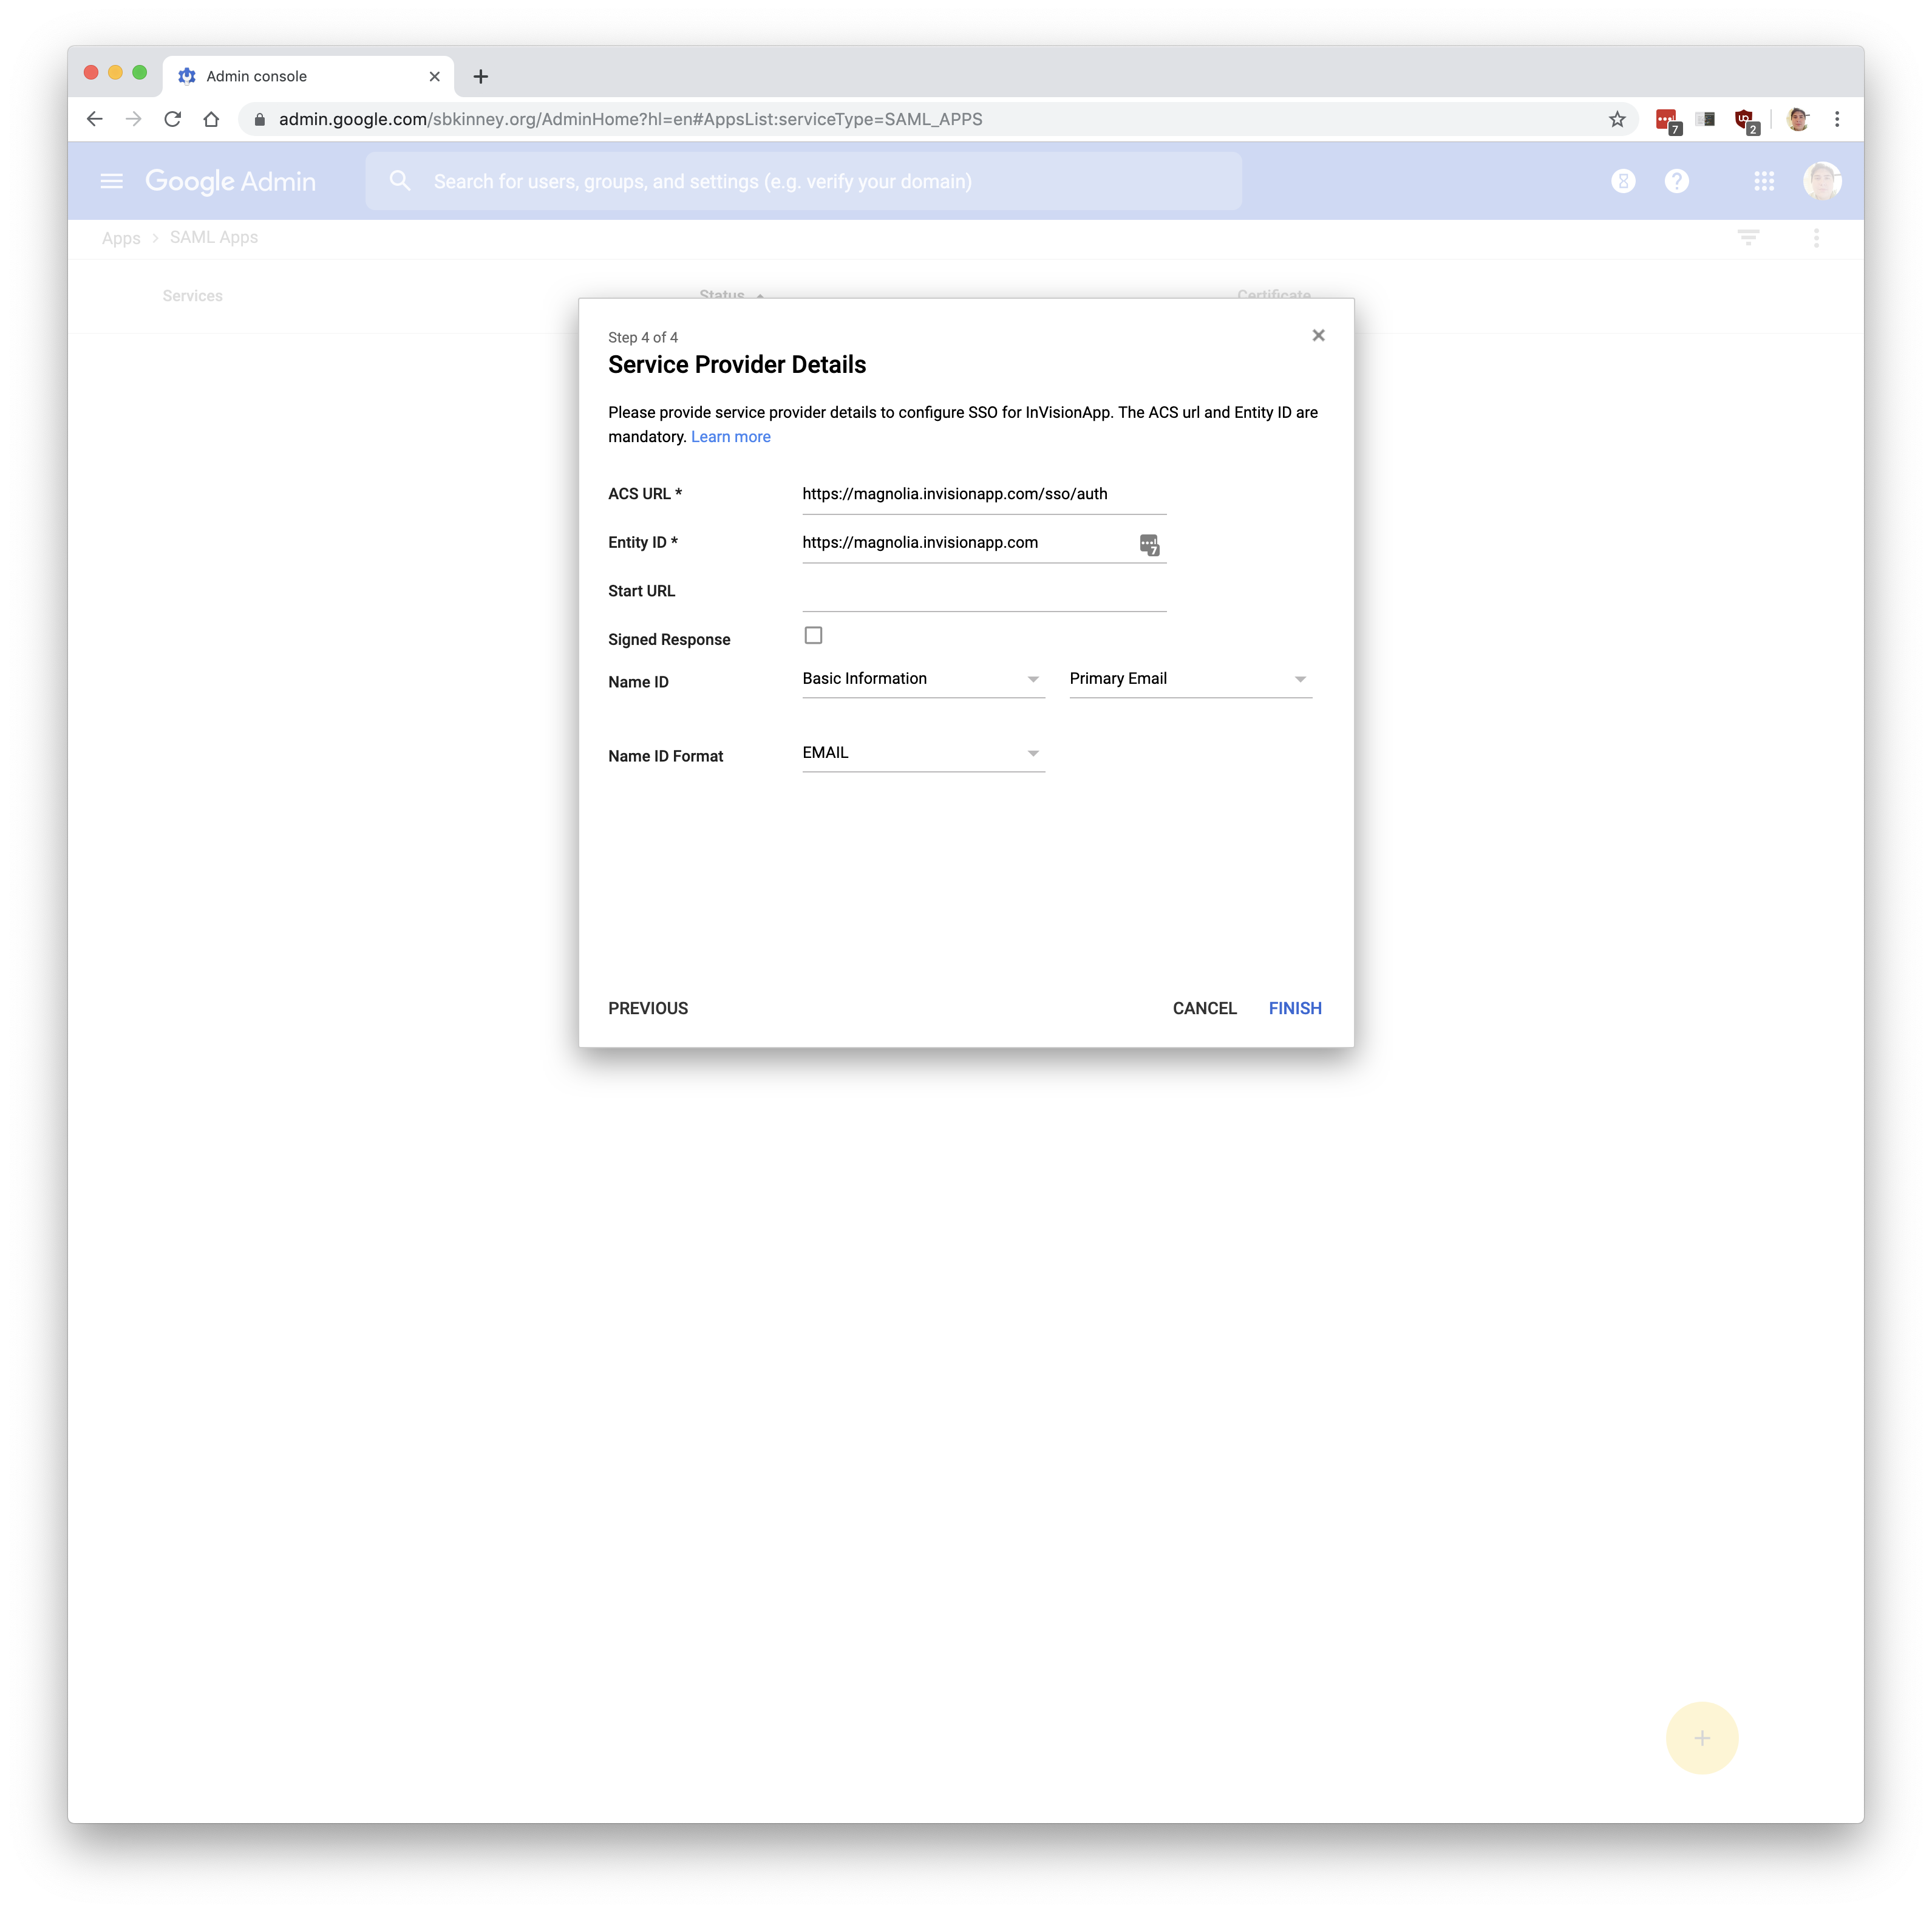 google-admin-console-apps-saml-invisionapp-service-provider-details-finish.png